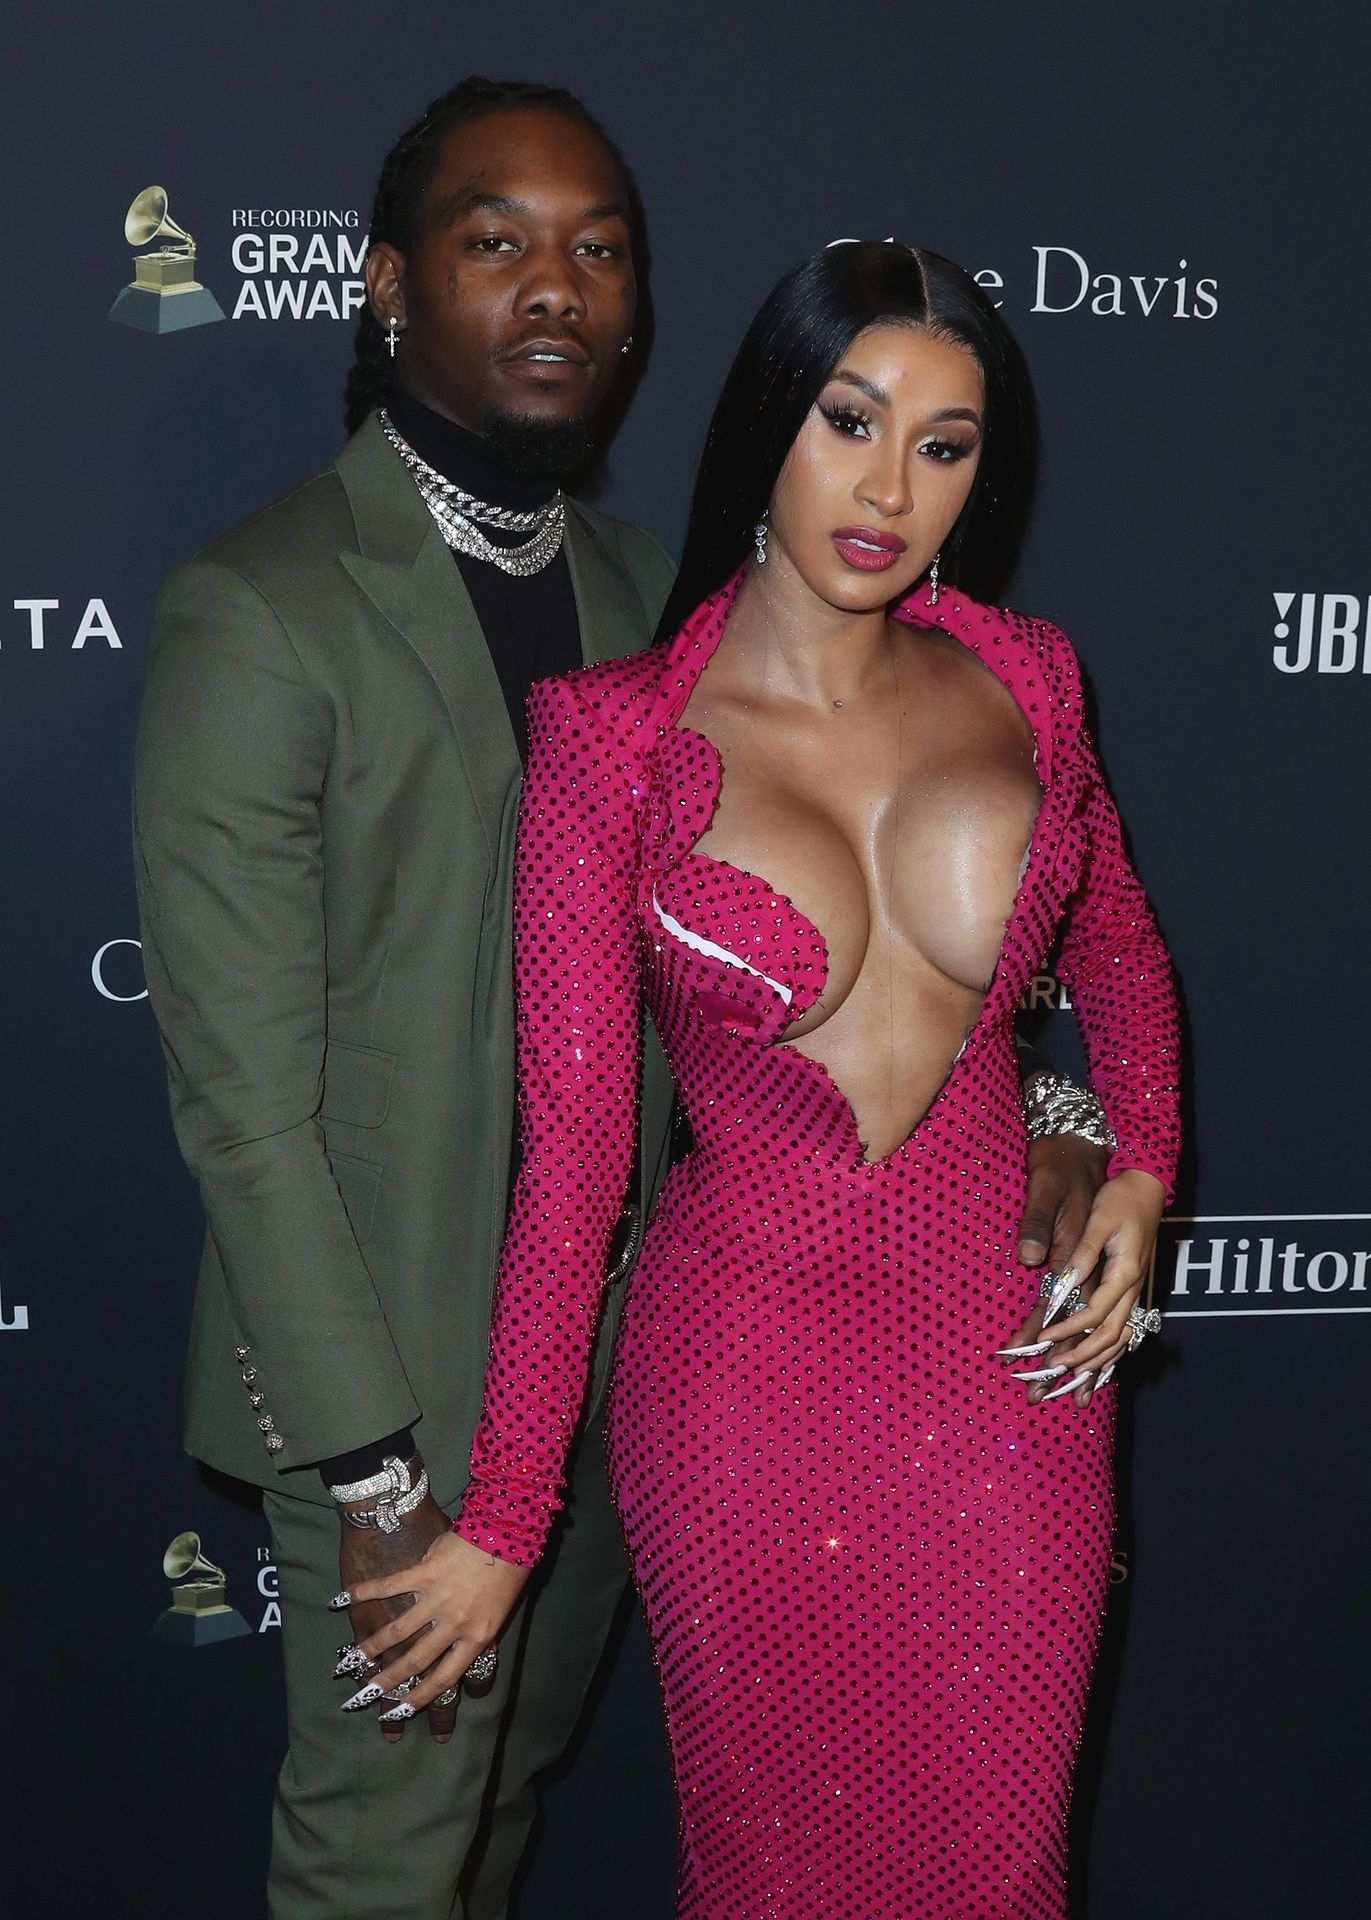 Offset Covers Cardi B's Boobs To Avoid Wardrobe Malfunction At Clive Davis Pre Grammy Party 0033